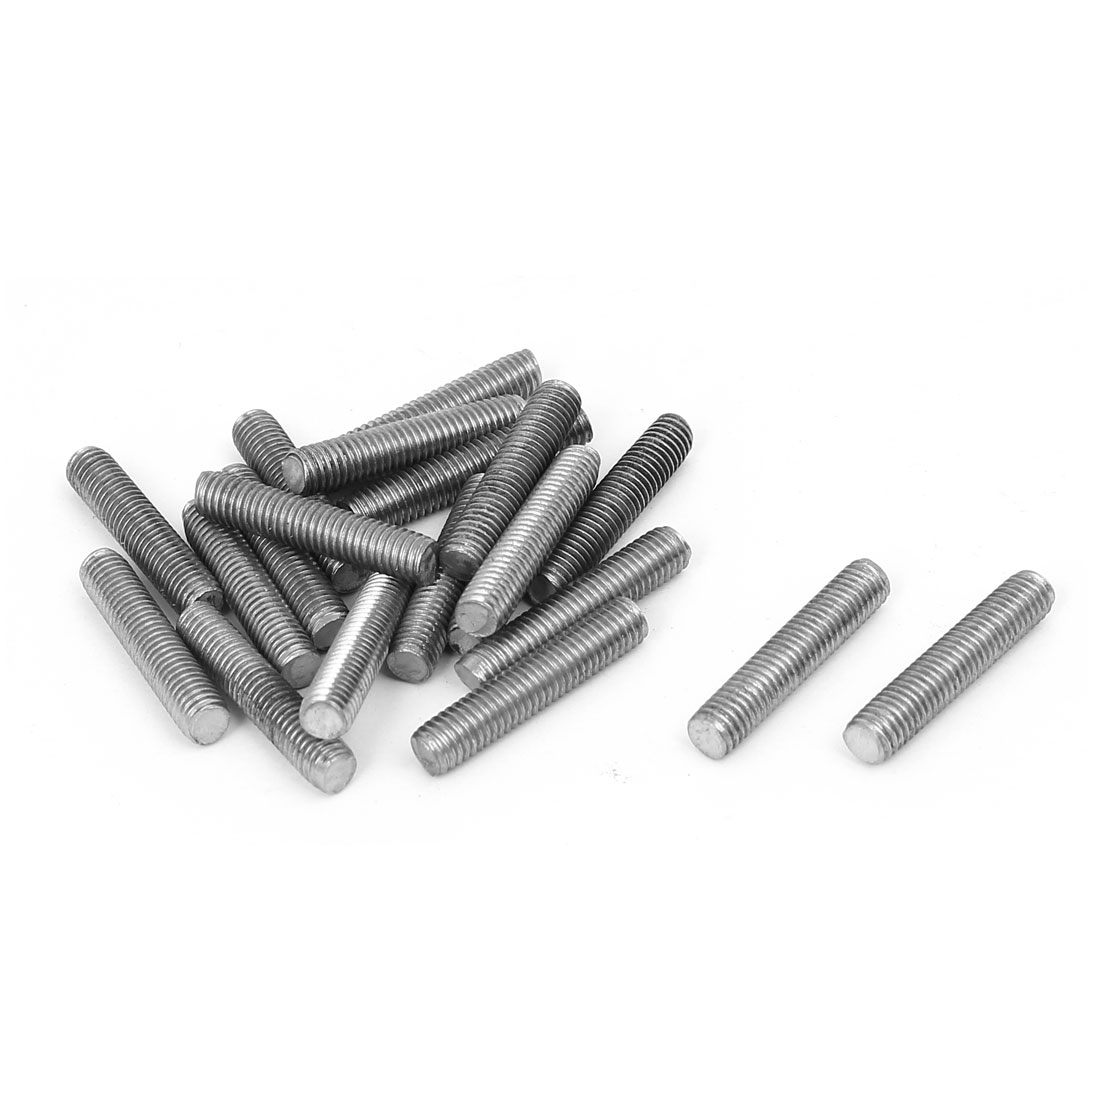 M5 x 25mm 0.8mm Pitch 304 Stainless Steel Fully Threaded Rod Bar Studs 20 Pcs